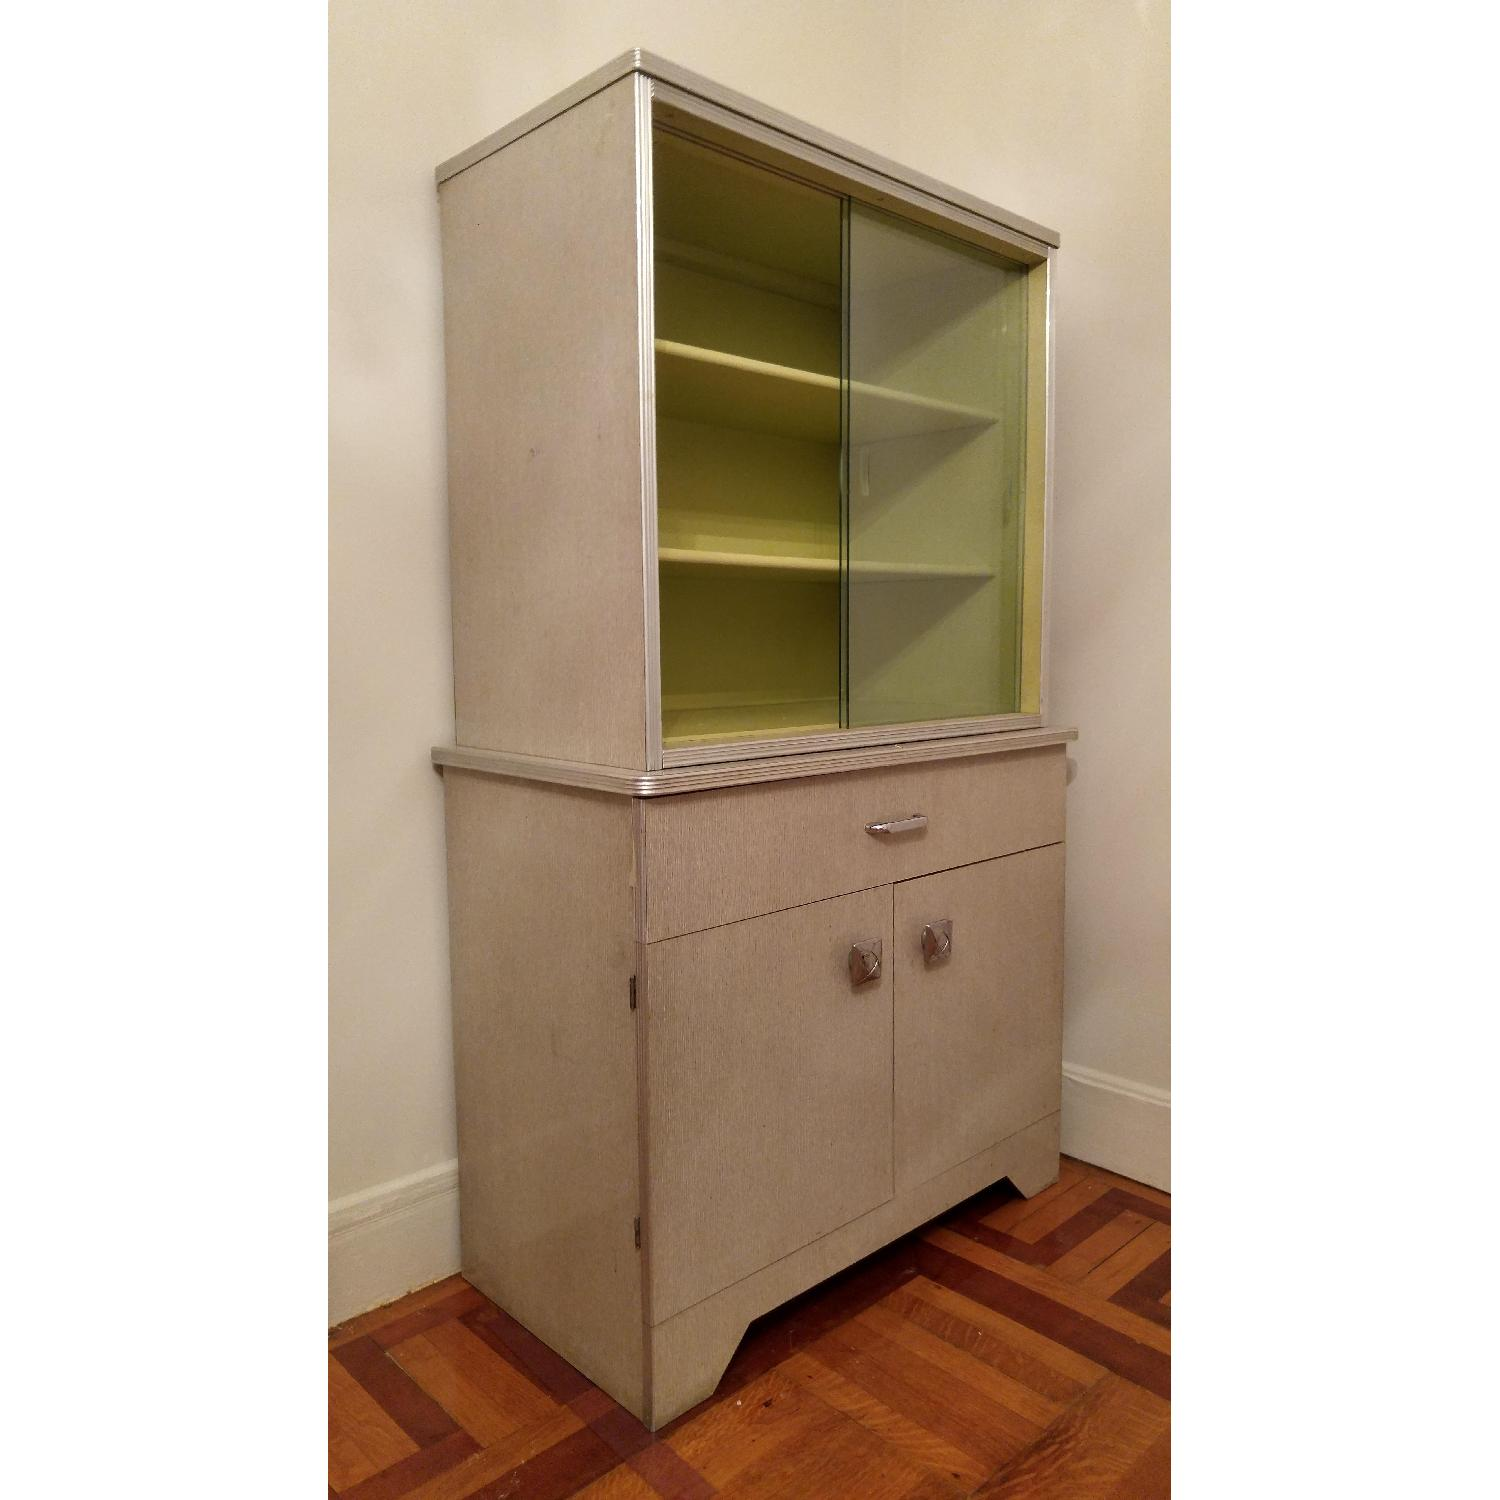 1970's Avocado Green China Cabinet w/ Sliding Glass - image-4